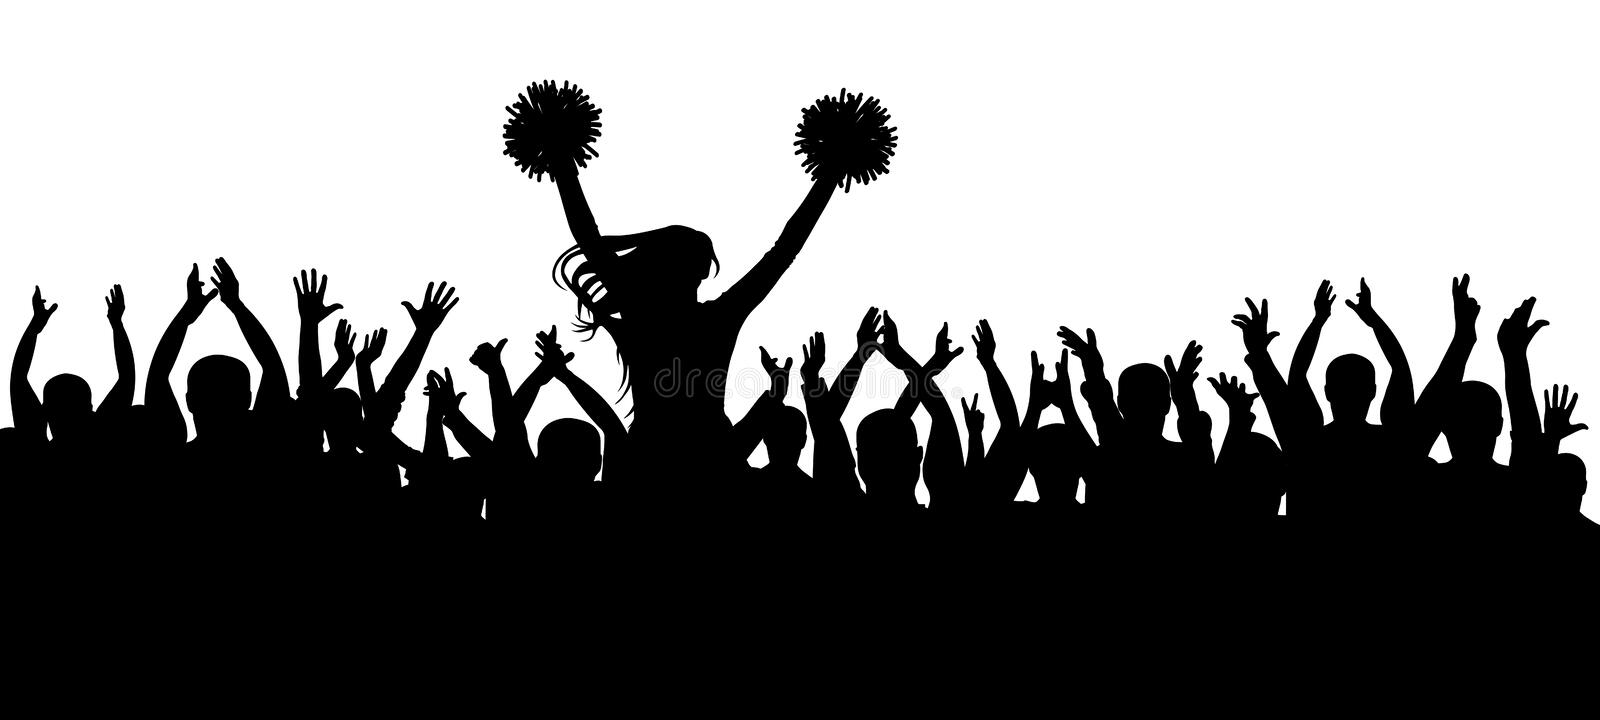 The fans cheering along with the cheerleader silhouette. Crowd. Sport. Vector illustration.  stock illustration